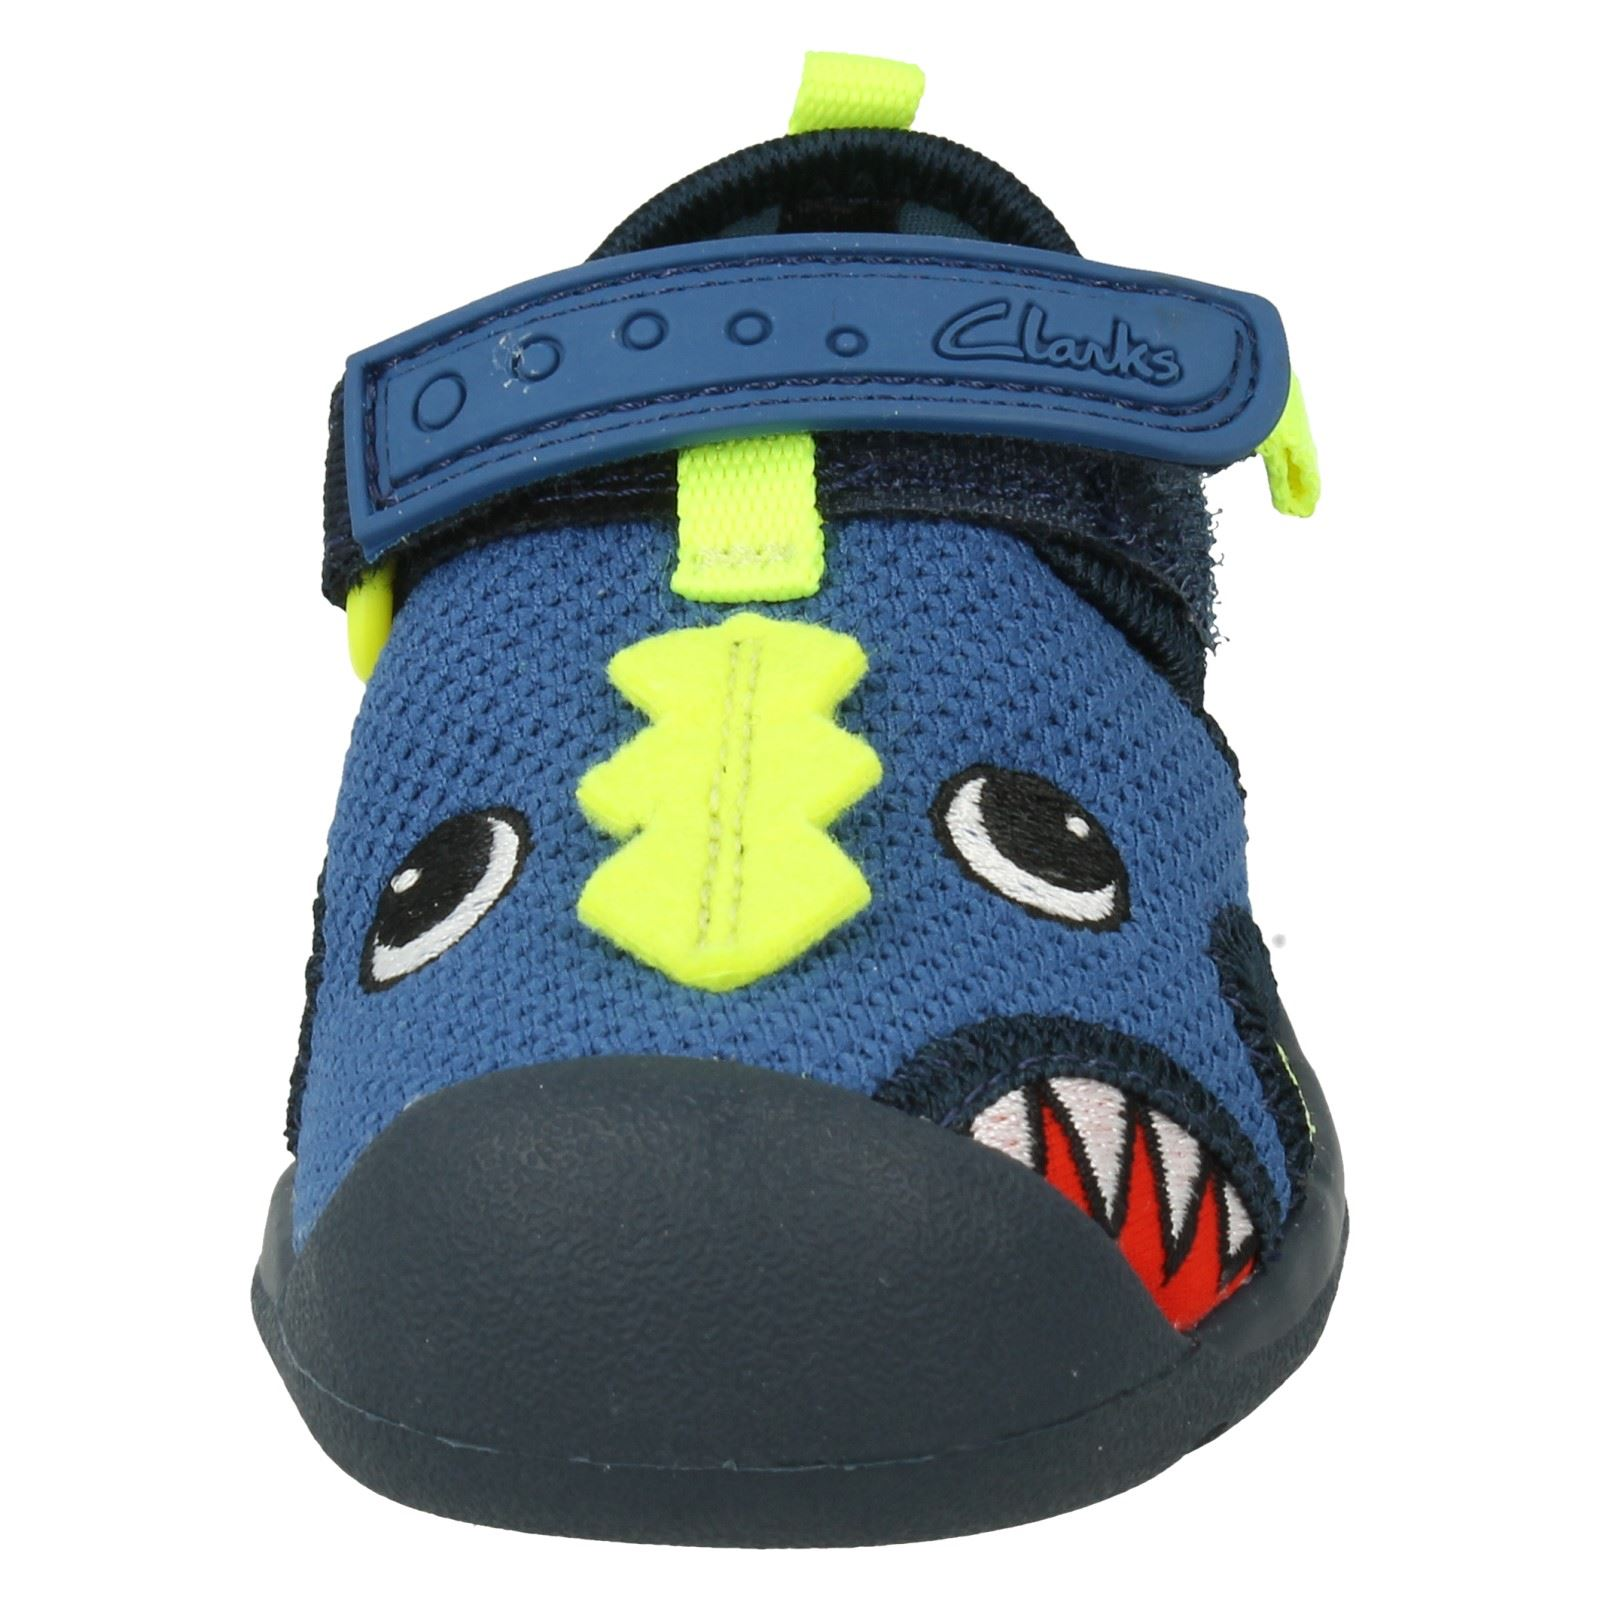 Boys Clarks Doodles First Shoes The Style - Beach Curl